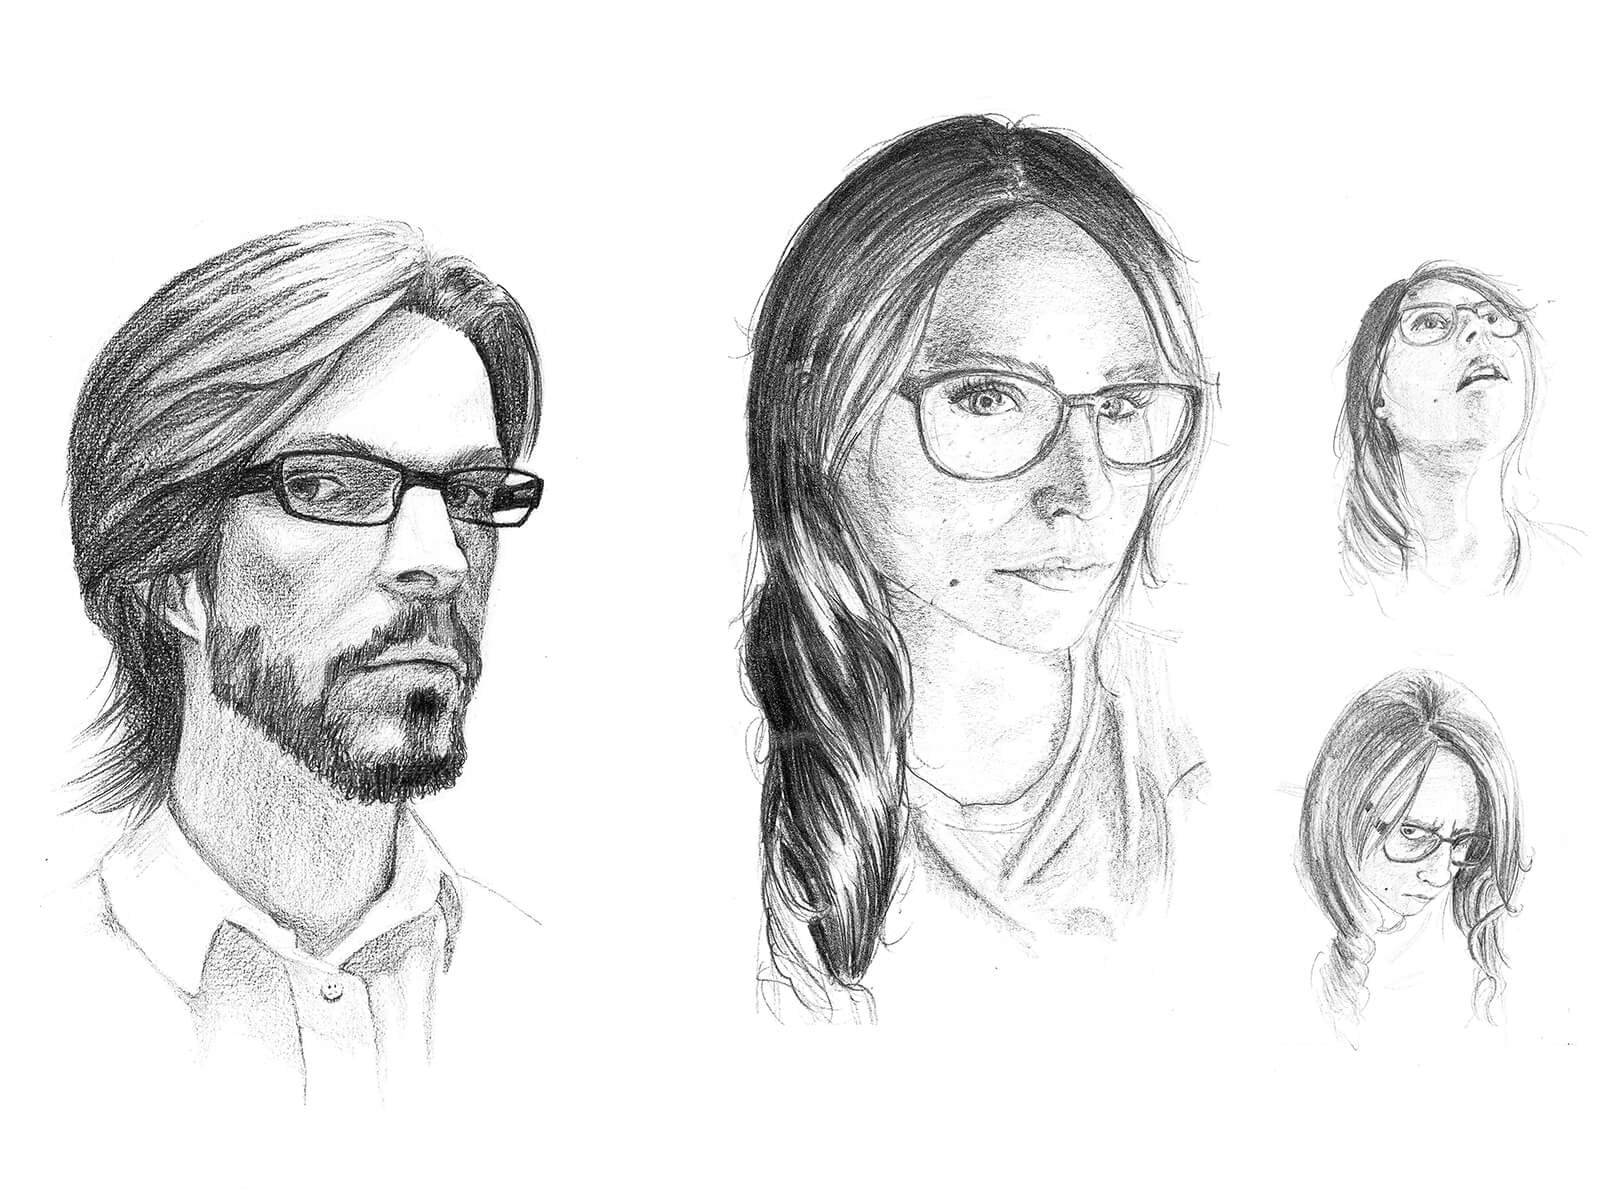 Black-and-white self portraits of a male and female artists' faces. Each wear eyeglasses and the man has a beard.